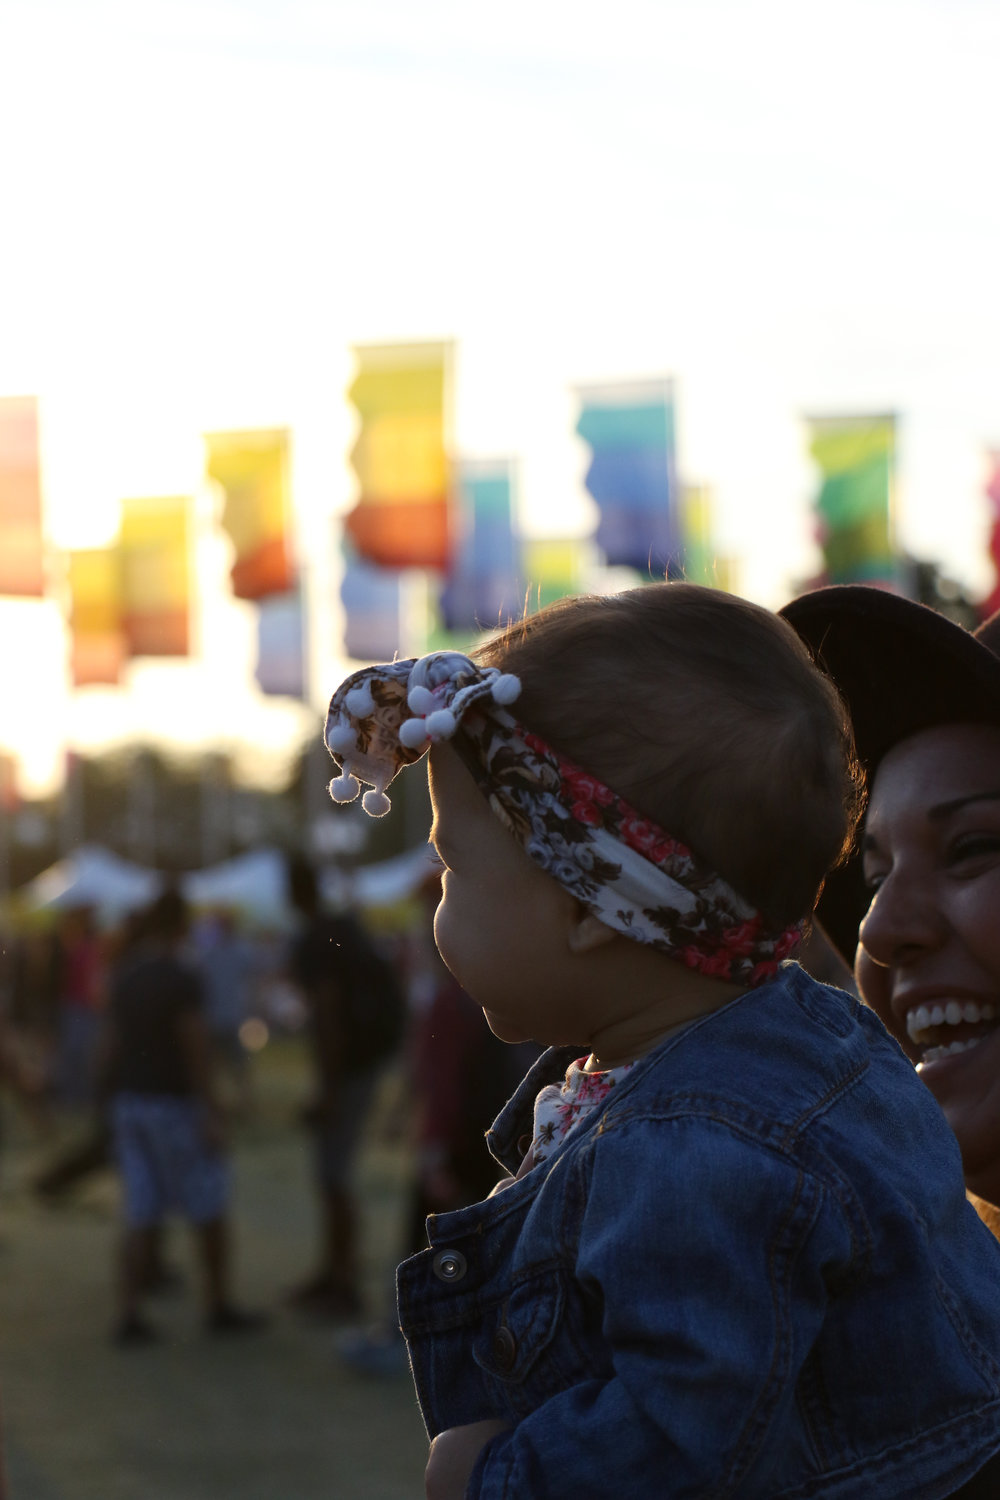 Festival-goers of all ages enjoy the music-filled weekend.